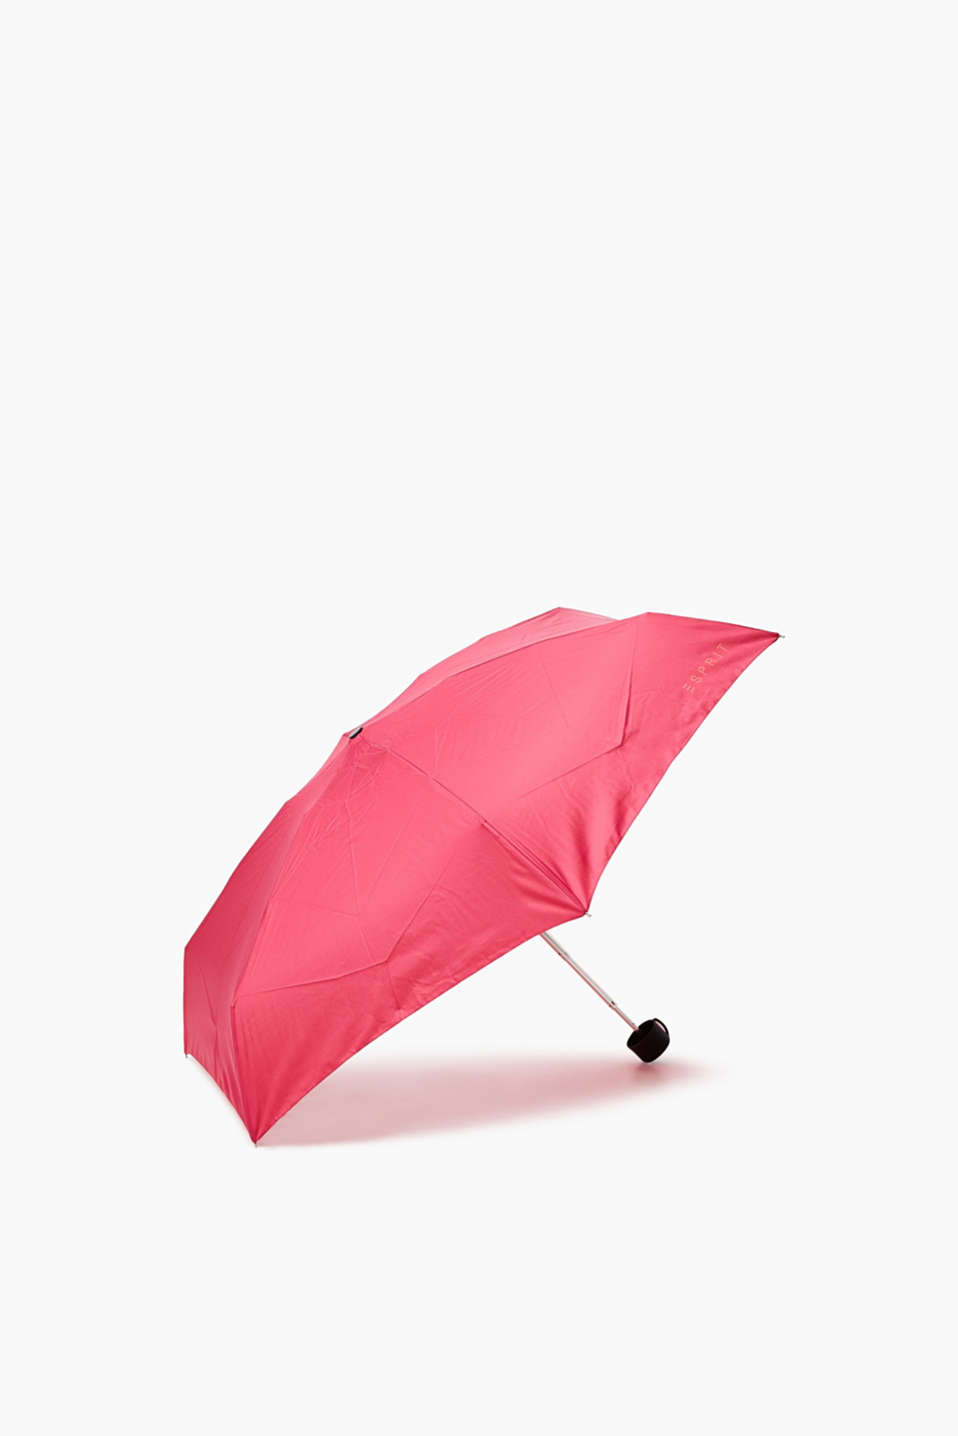 Easy to open and secure: compact pocket umbrella in a handy format